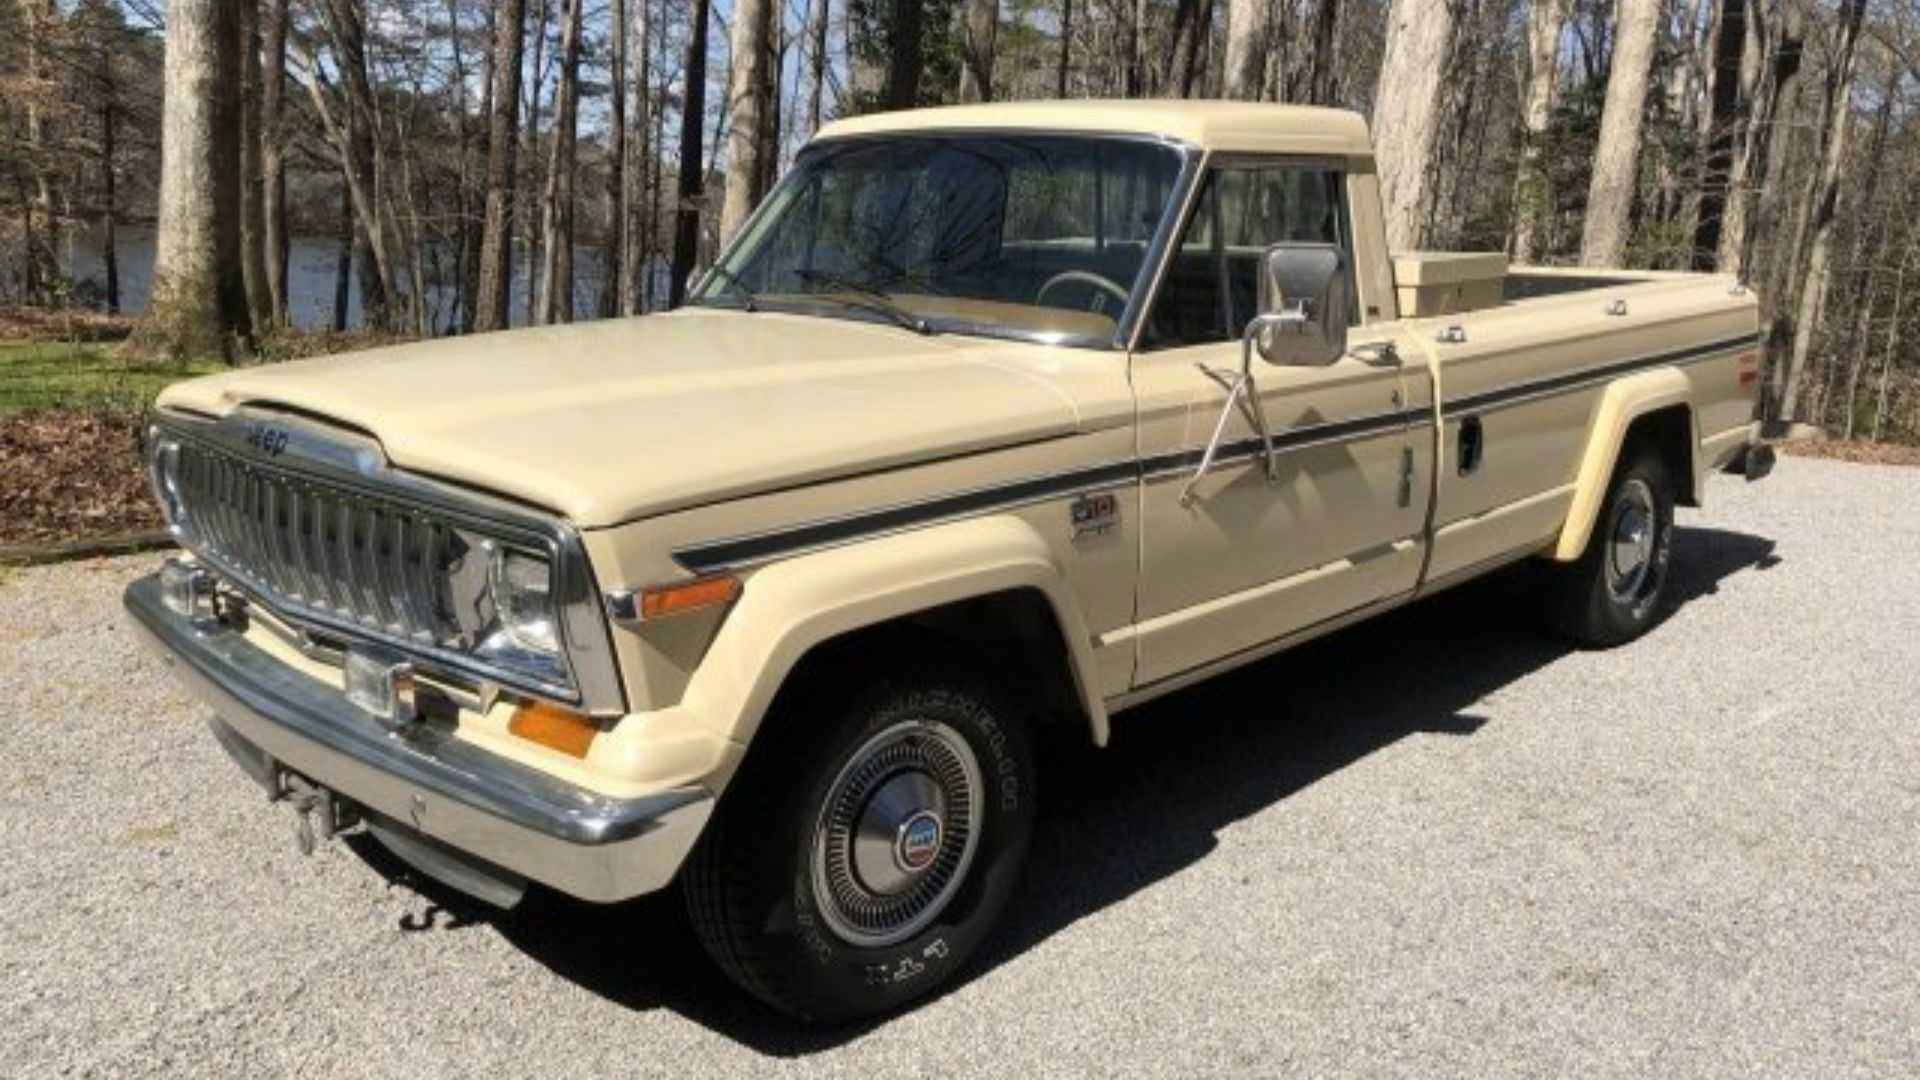 Save This Rugged And Rare 1985 Jeep J10 Pioneer | Motorious